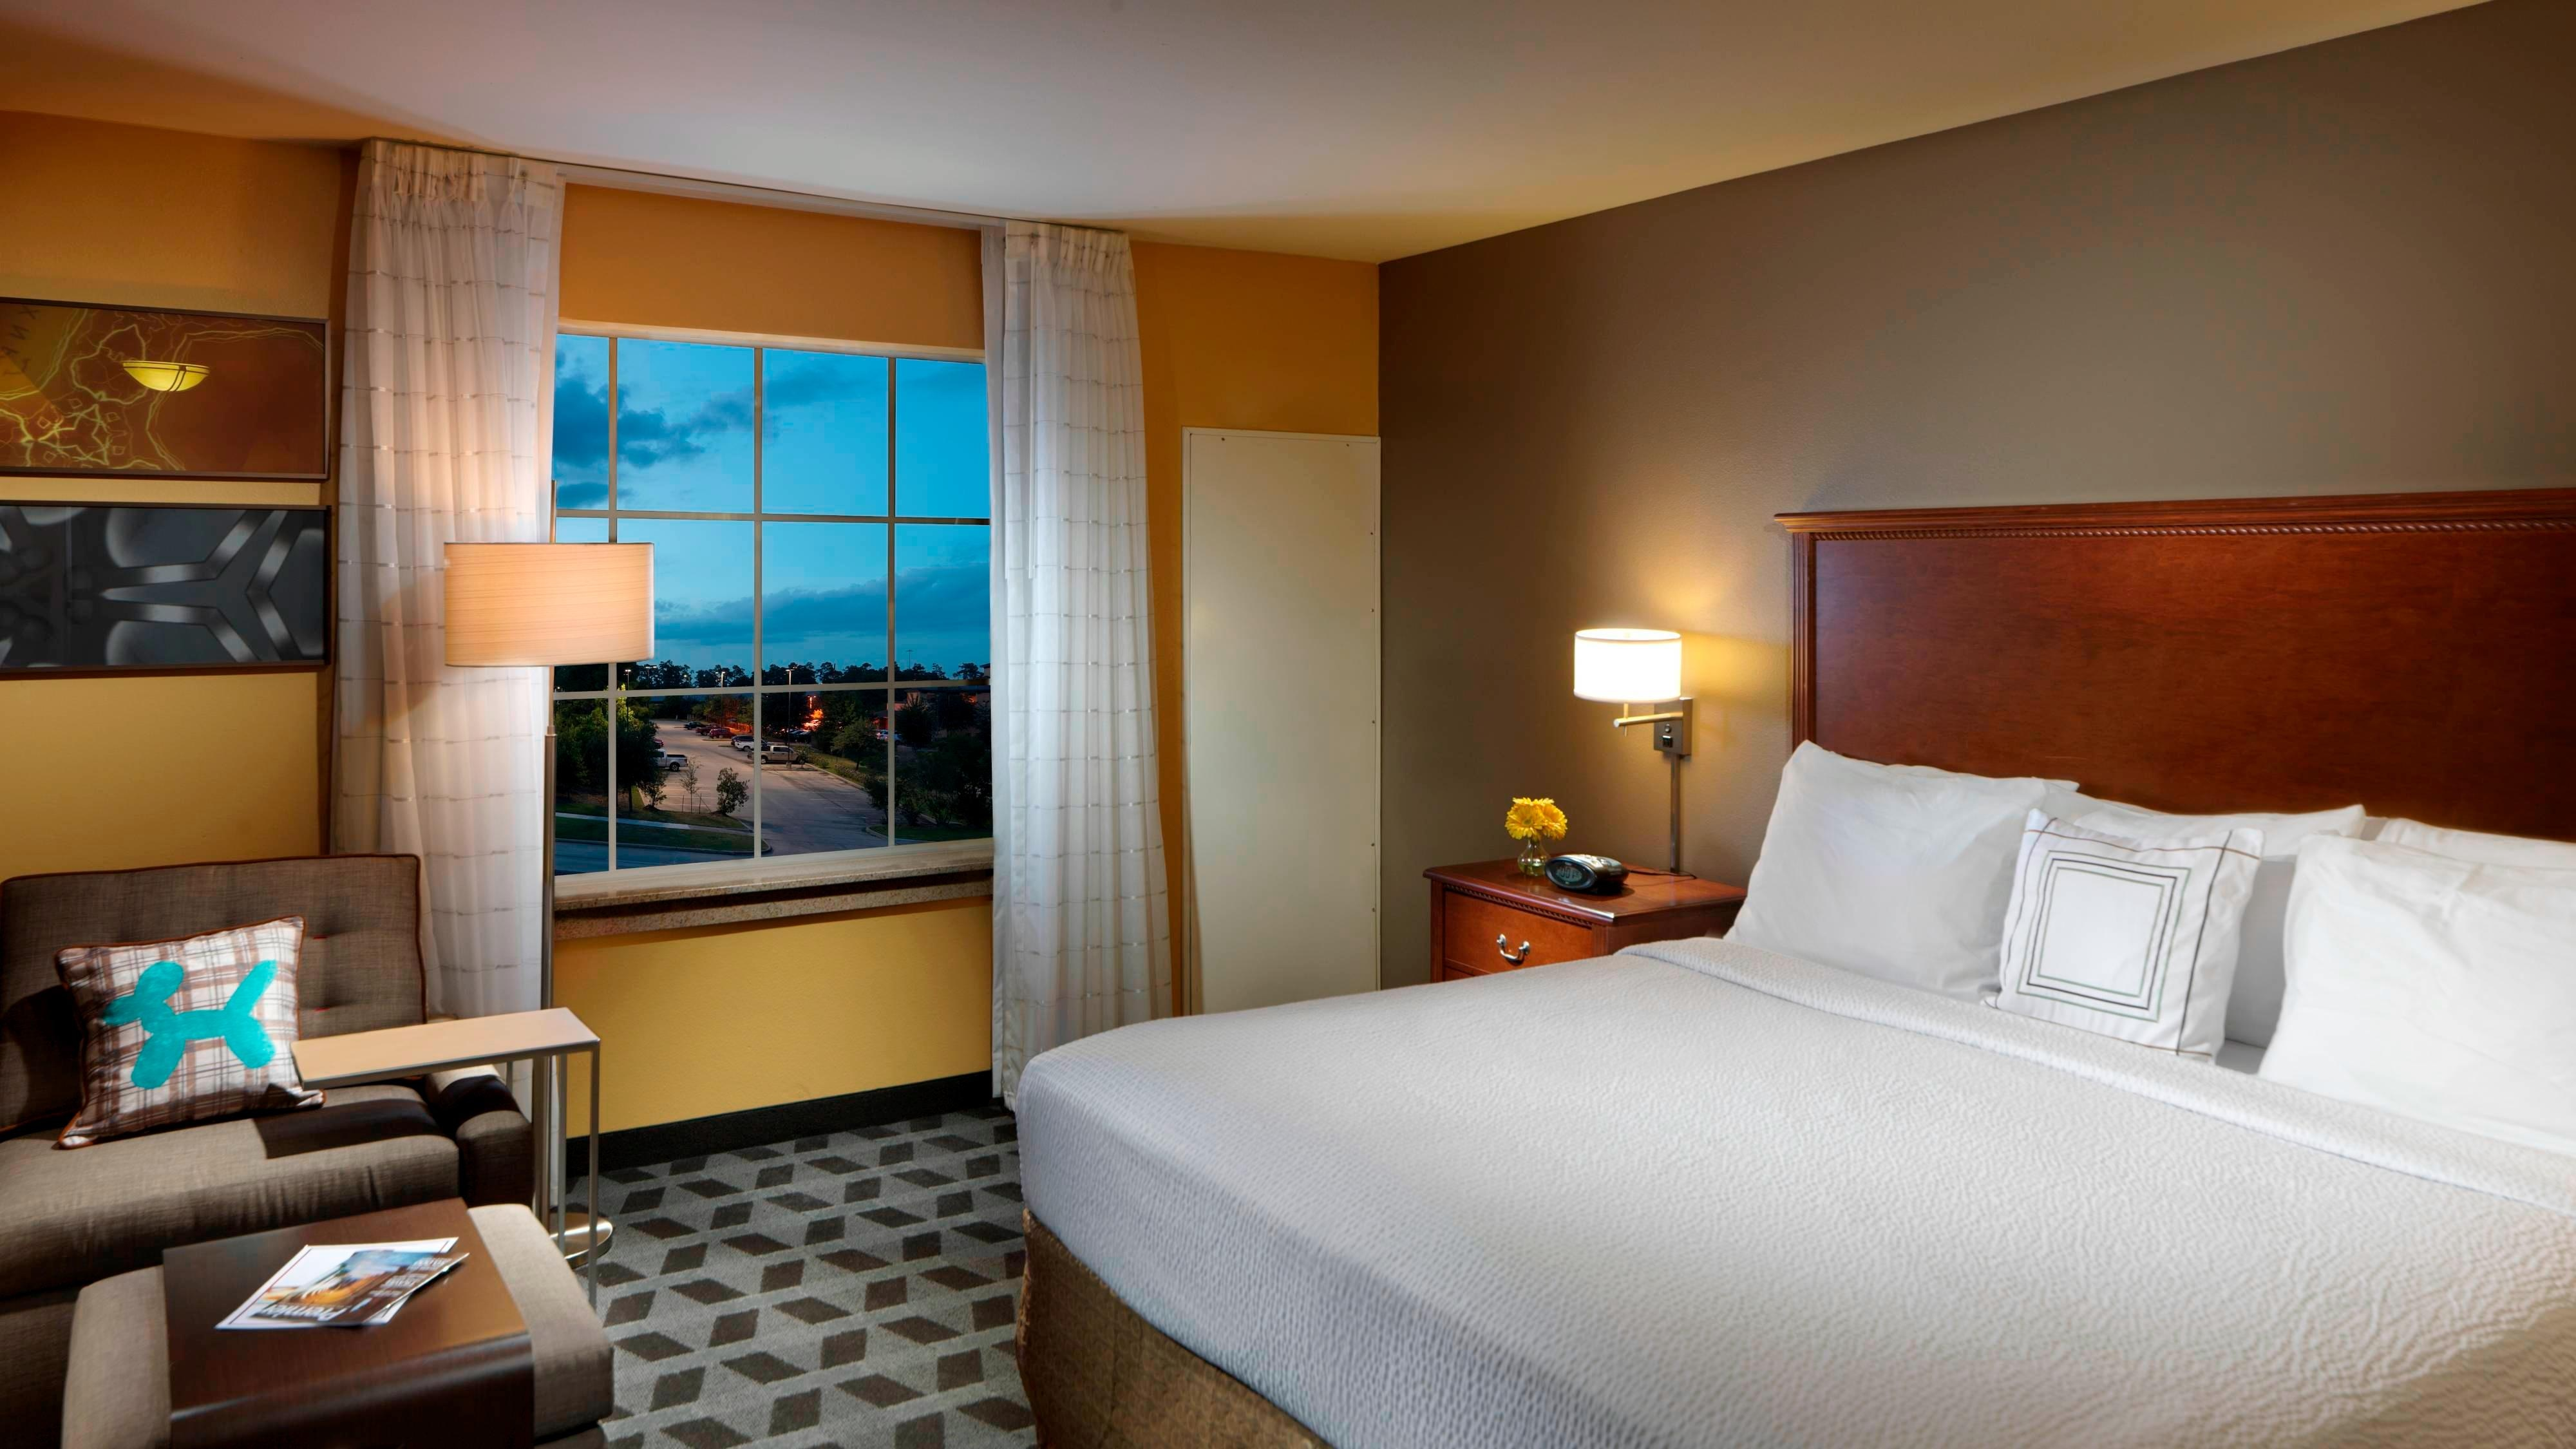 The Woodlands Hotel Rooms